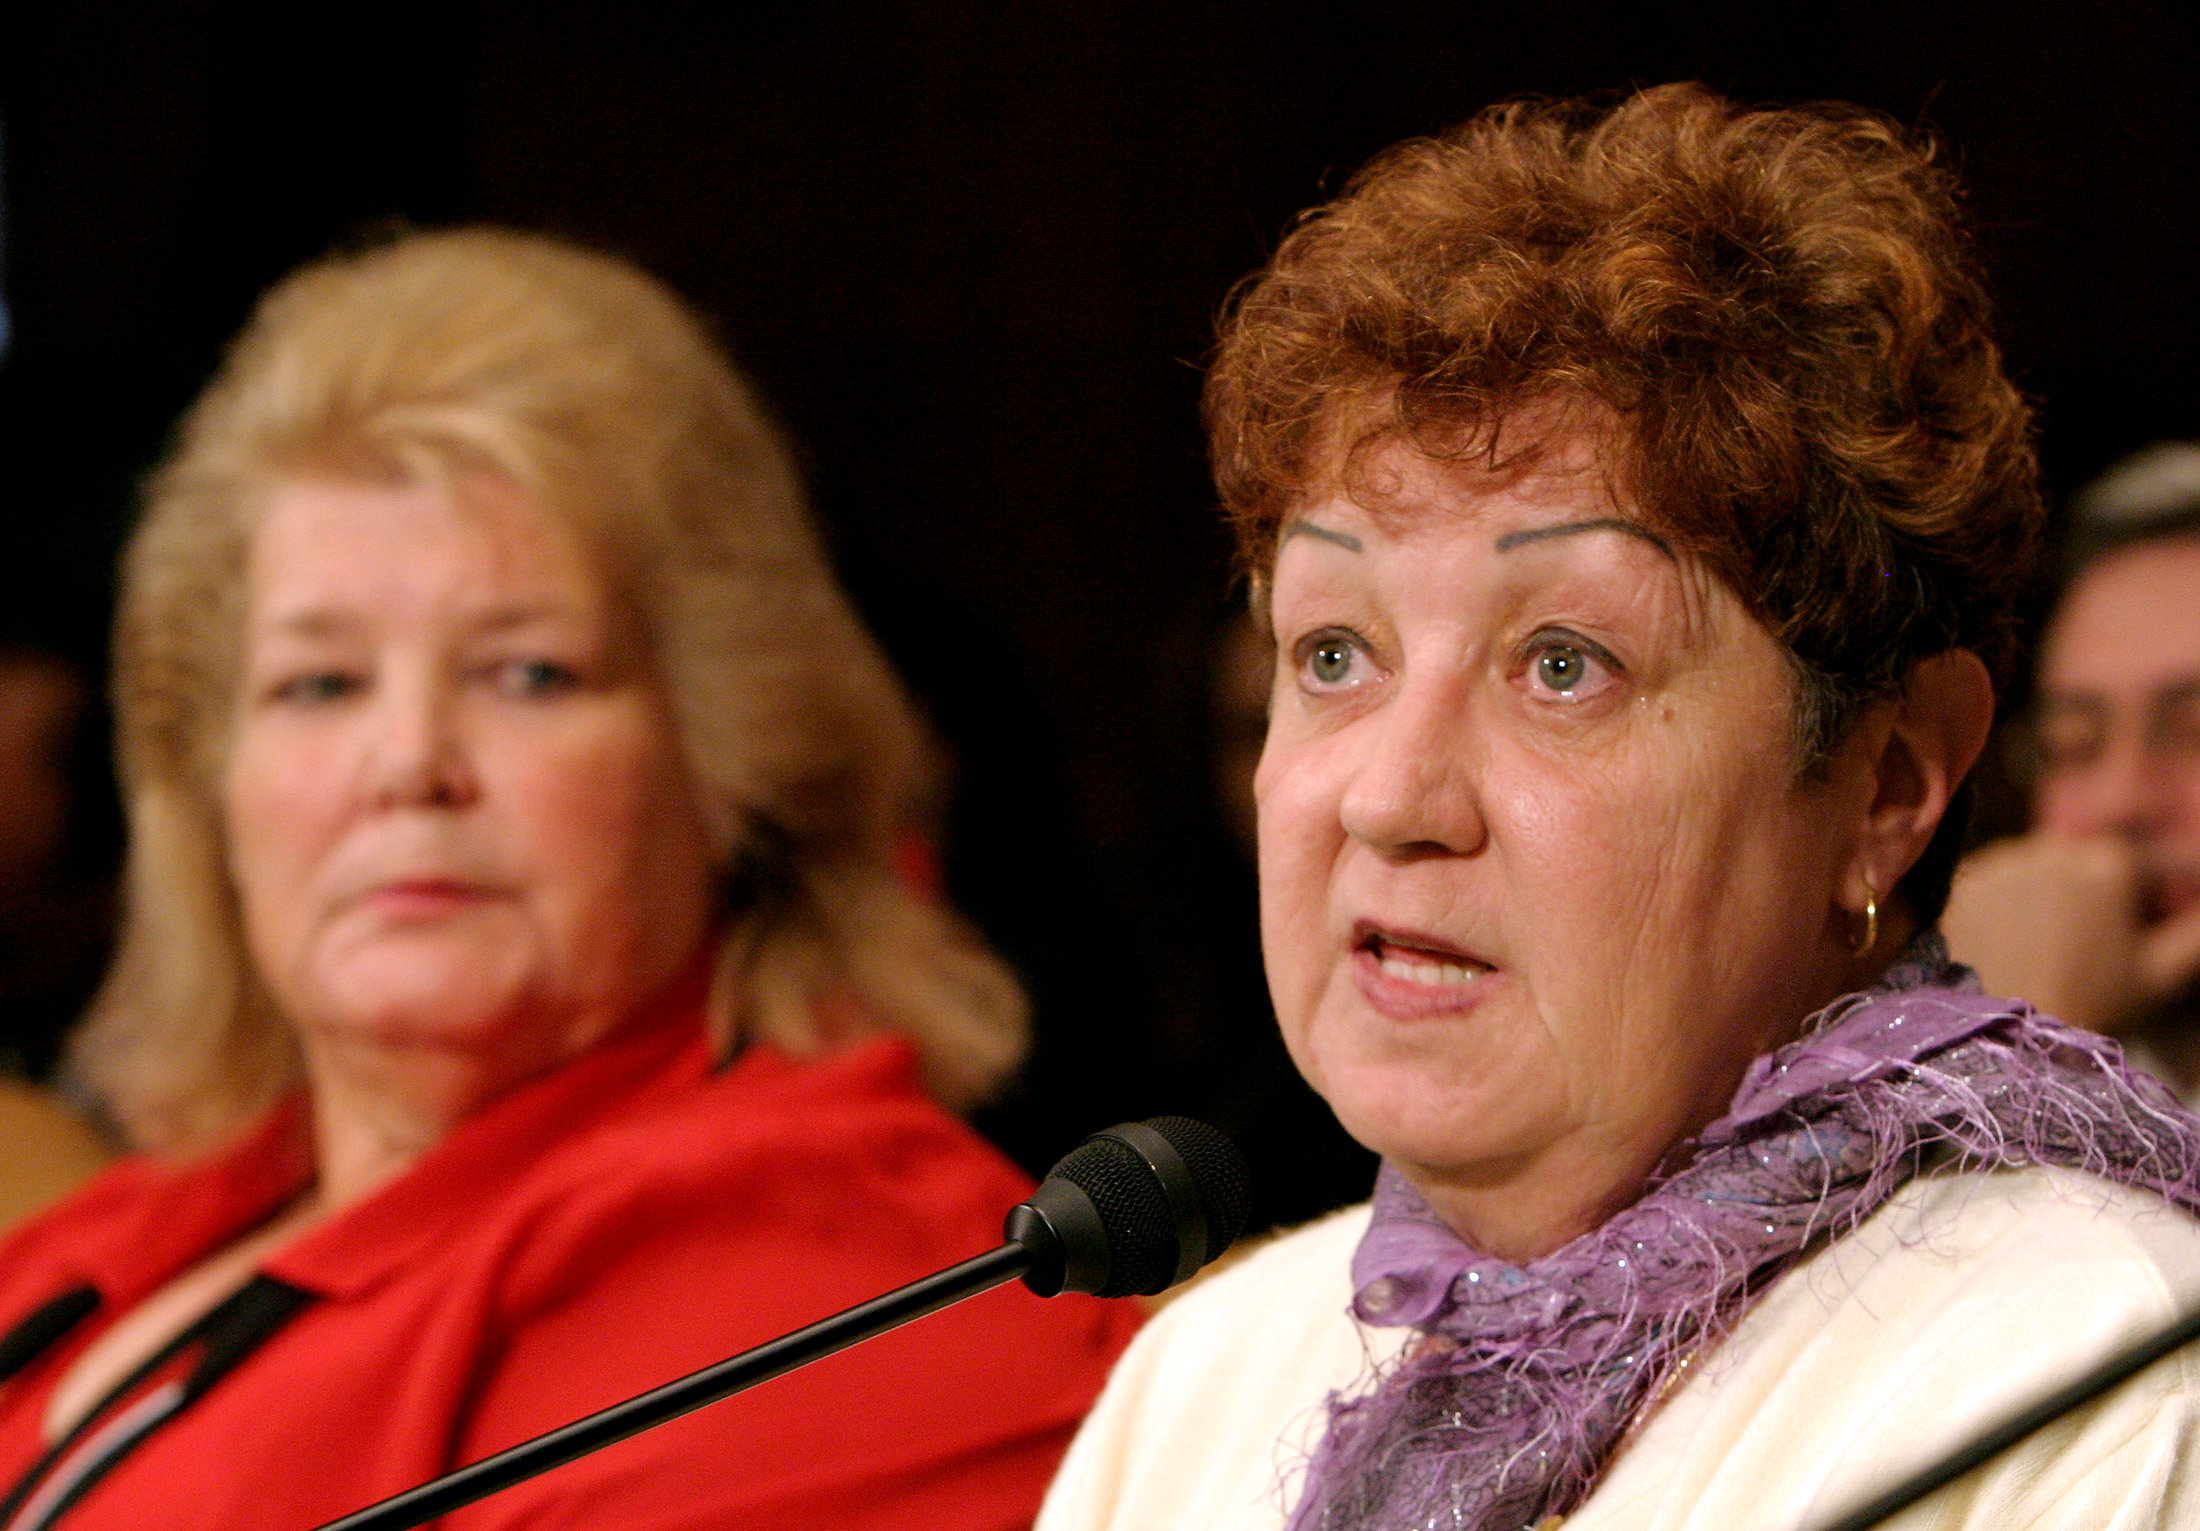 "Norma McCorvey, the anonymous plaintiff known as Jane Roe in the Supreme Court's landmark 1973 Roe vs. Wade ruling legalizing abortion in the United States, testifies before the Senate Judiciary Committee along with Sandra Cano of Atlanta, Georgia, the ""Doe"" in the Doe v. Bolton Supreme Court case, on Capitol Hill in Washington, DC, U.S. on June 23, 2005."